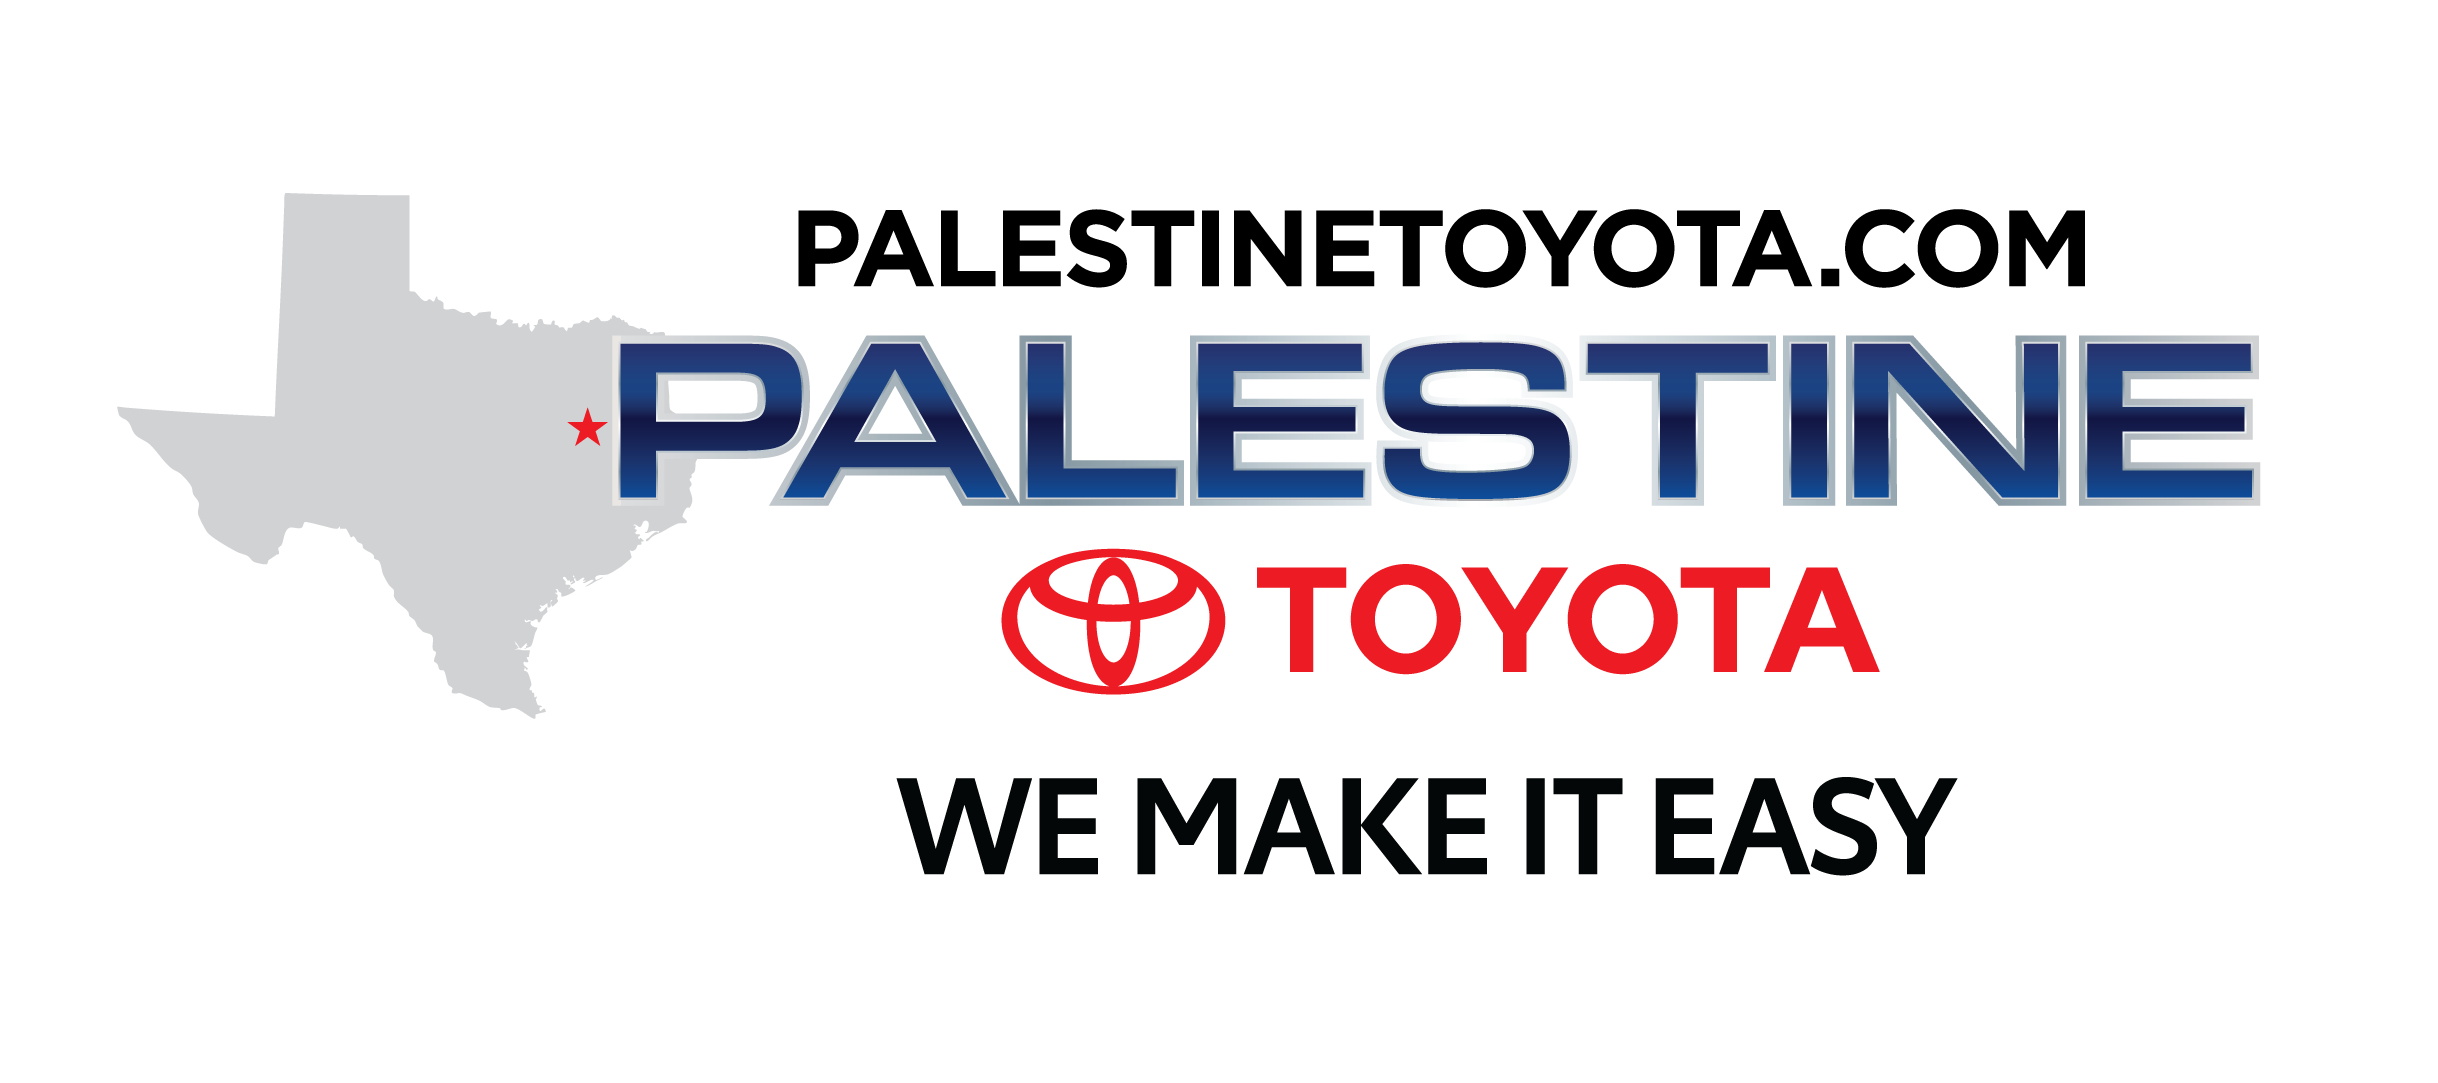 https://wordpressstorageaccount.blob.core.windows.net/wp-media/wp-content/uploads/sites/840/2019/09/palestine-toyota.png